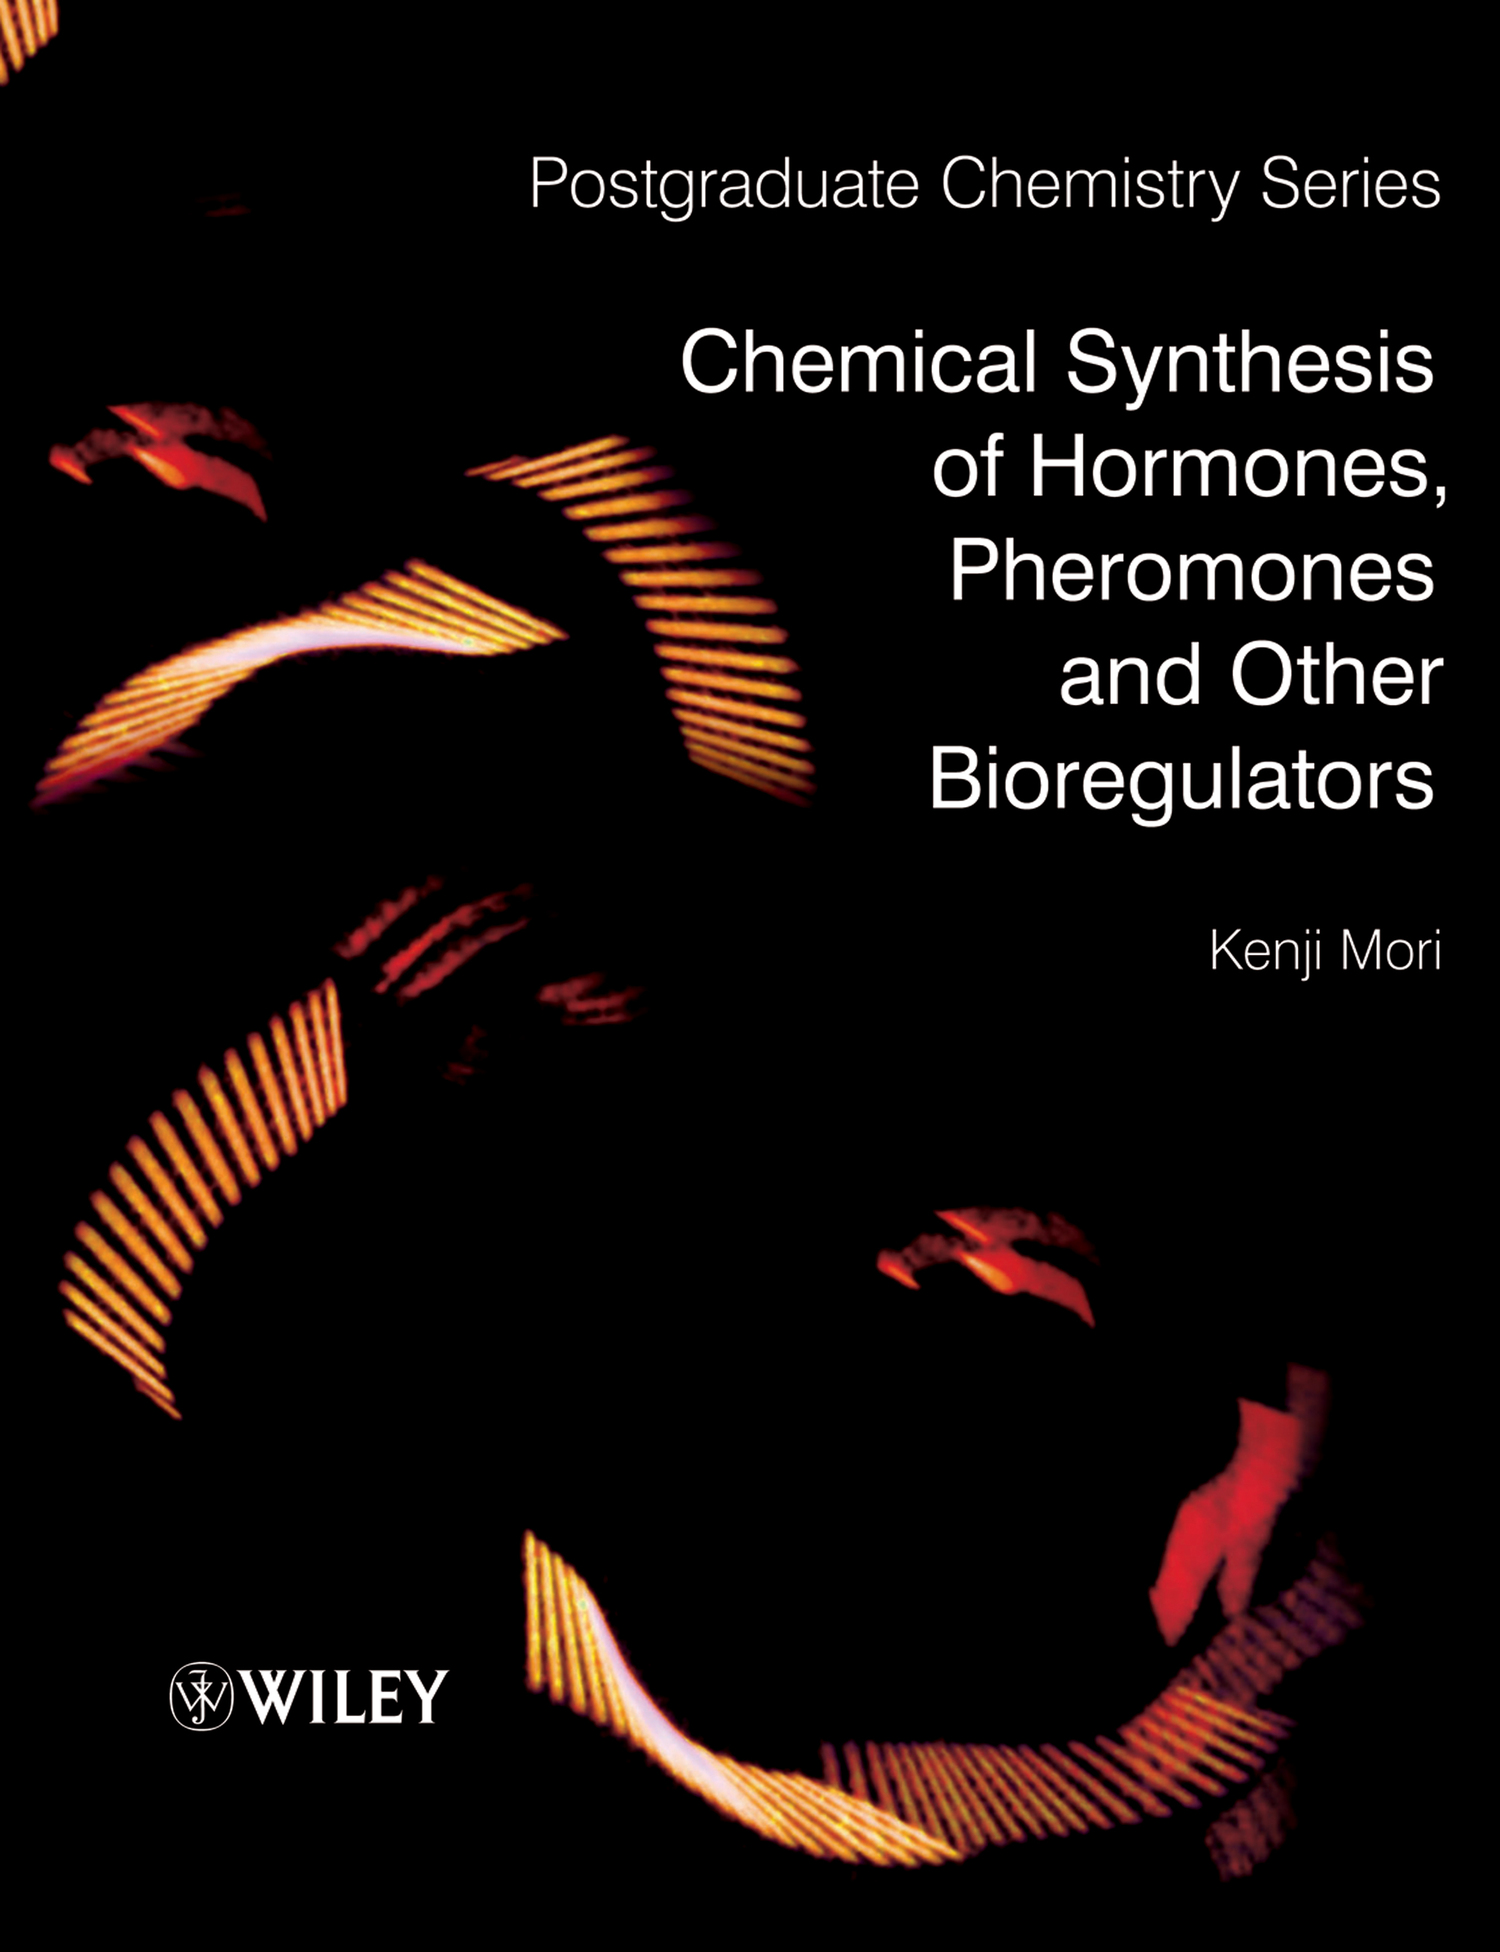 Kenji Mori Chemical Synthesis of Hormones, Pheromones and Other Bioregulators